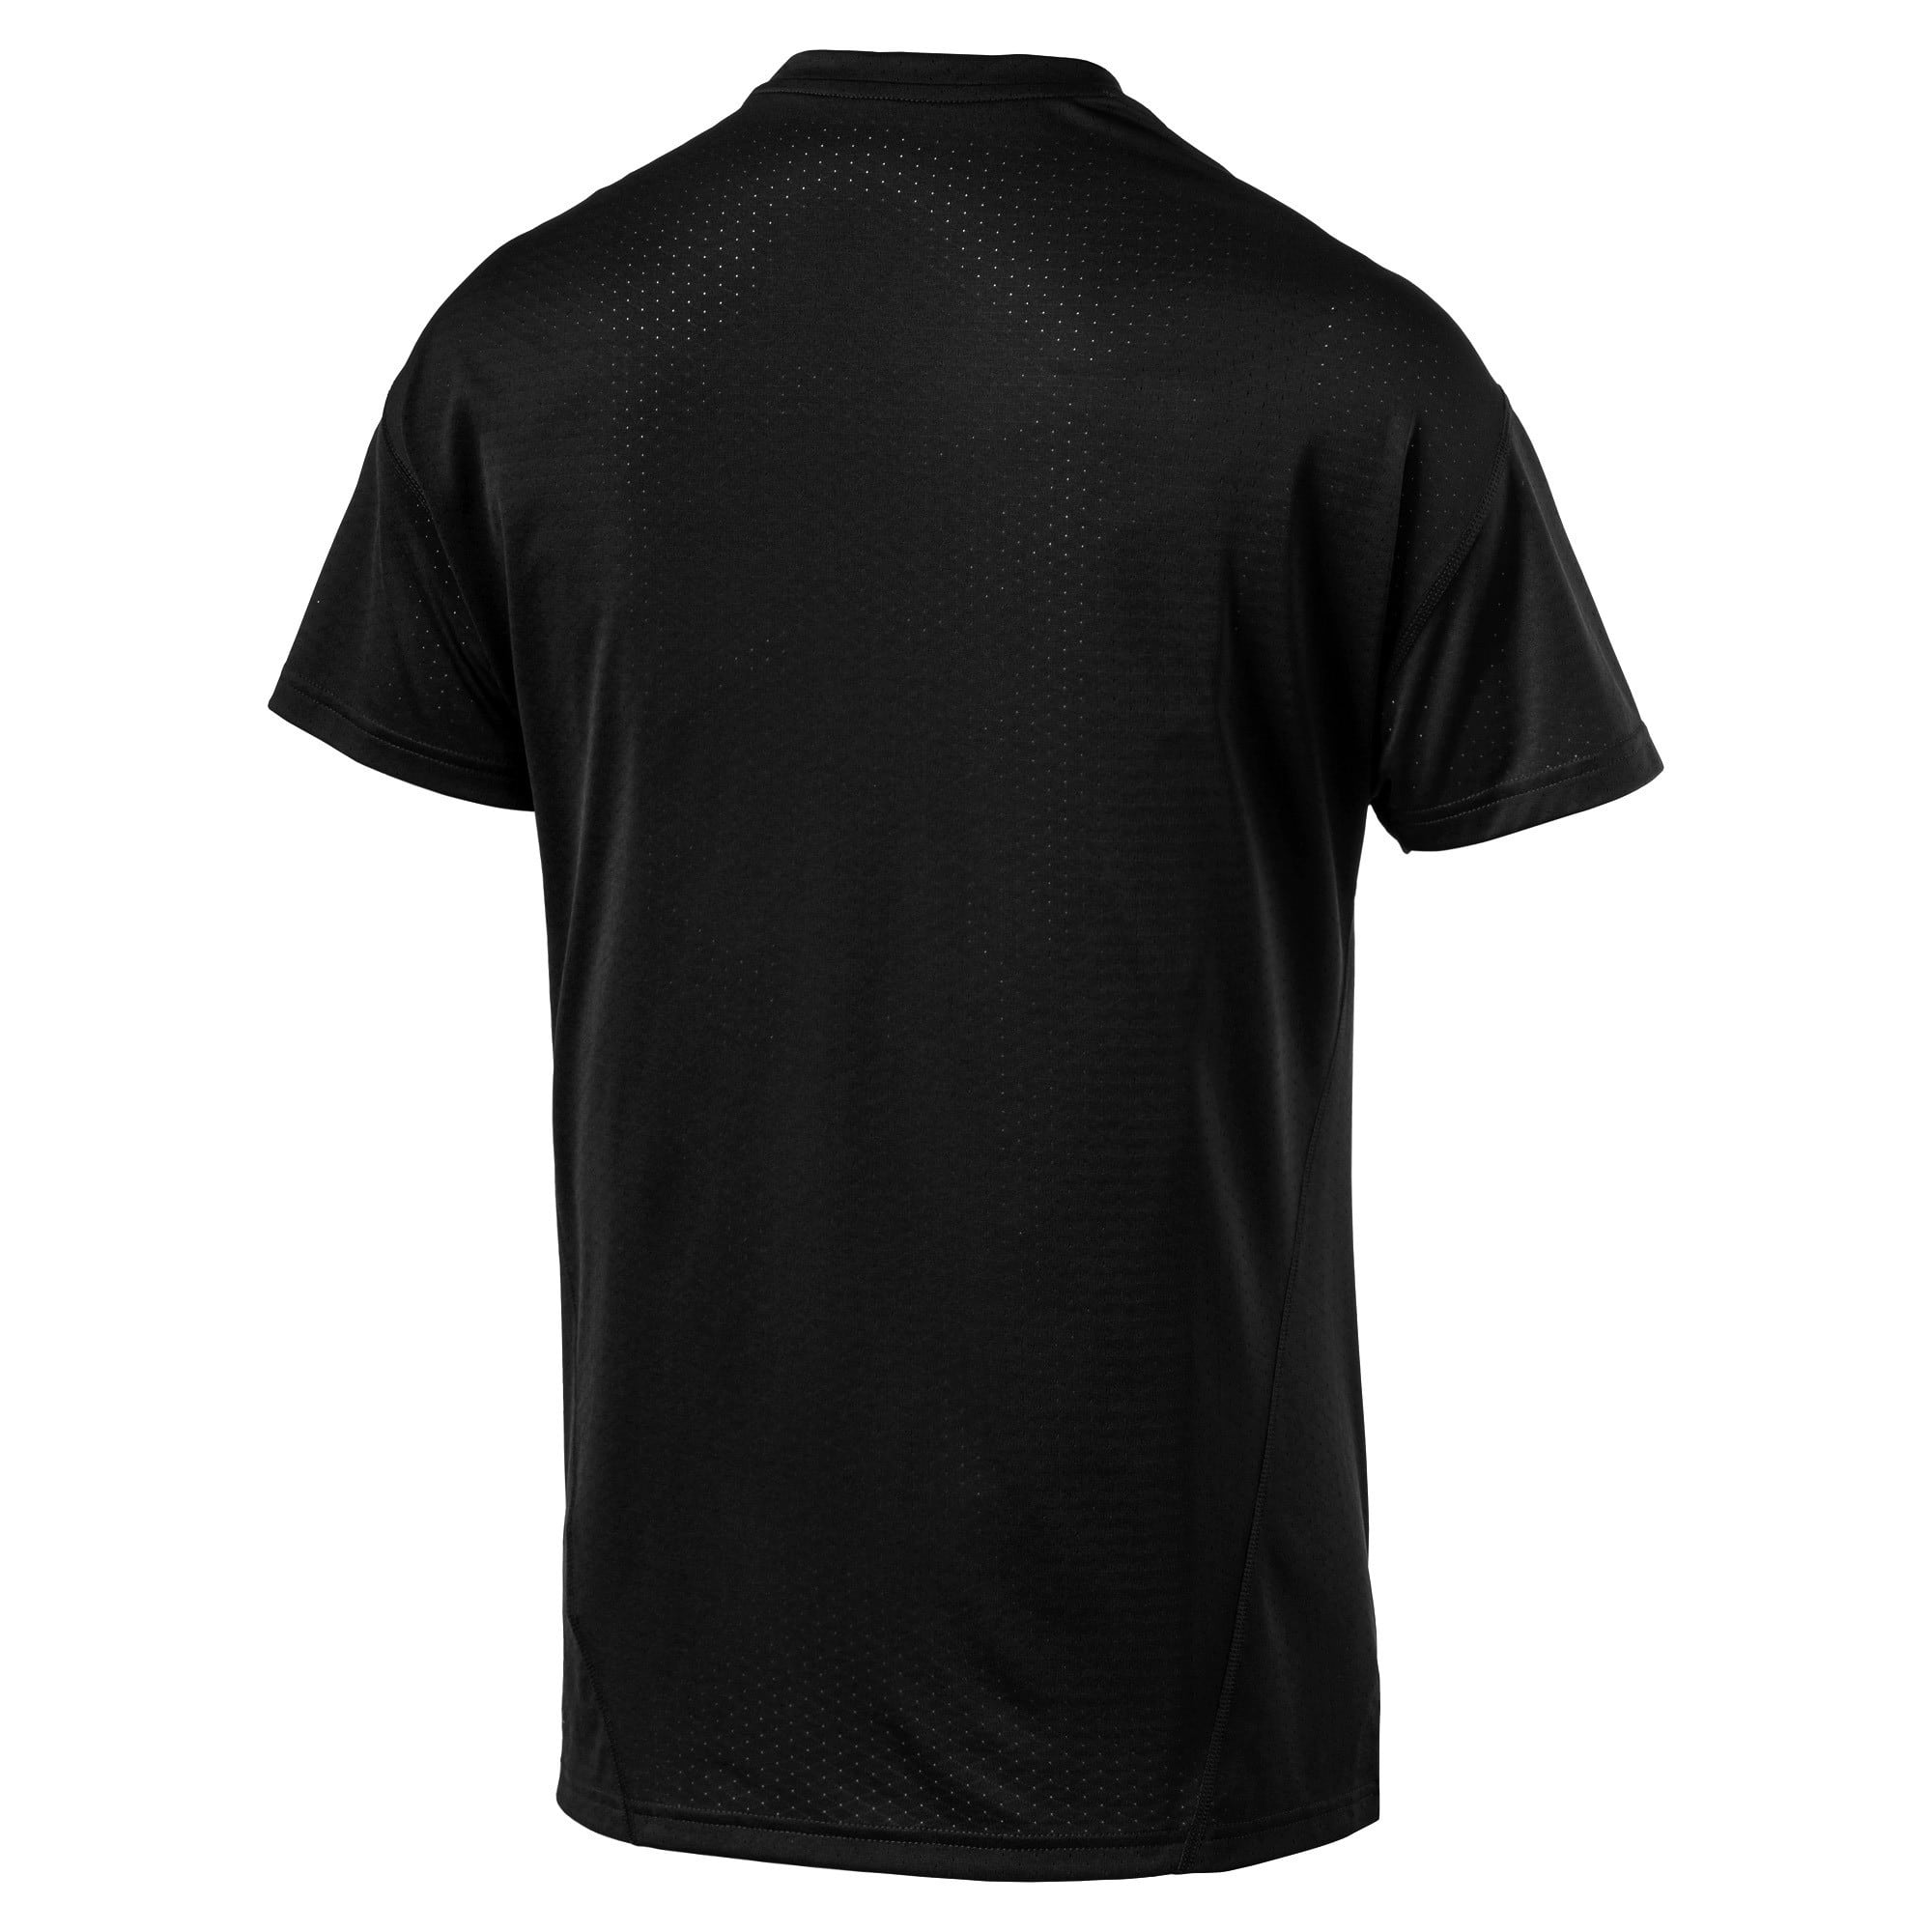 Thumbnail 2 of A.C.E. Short Sleeve Men's Training Top, Puma Black, medium